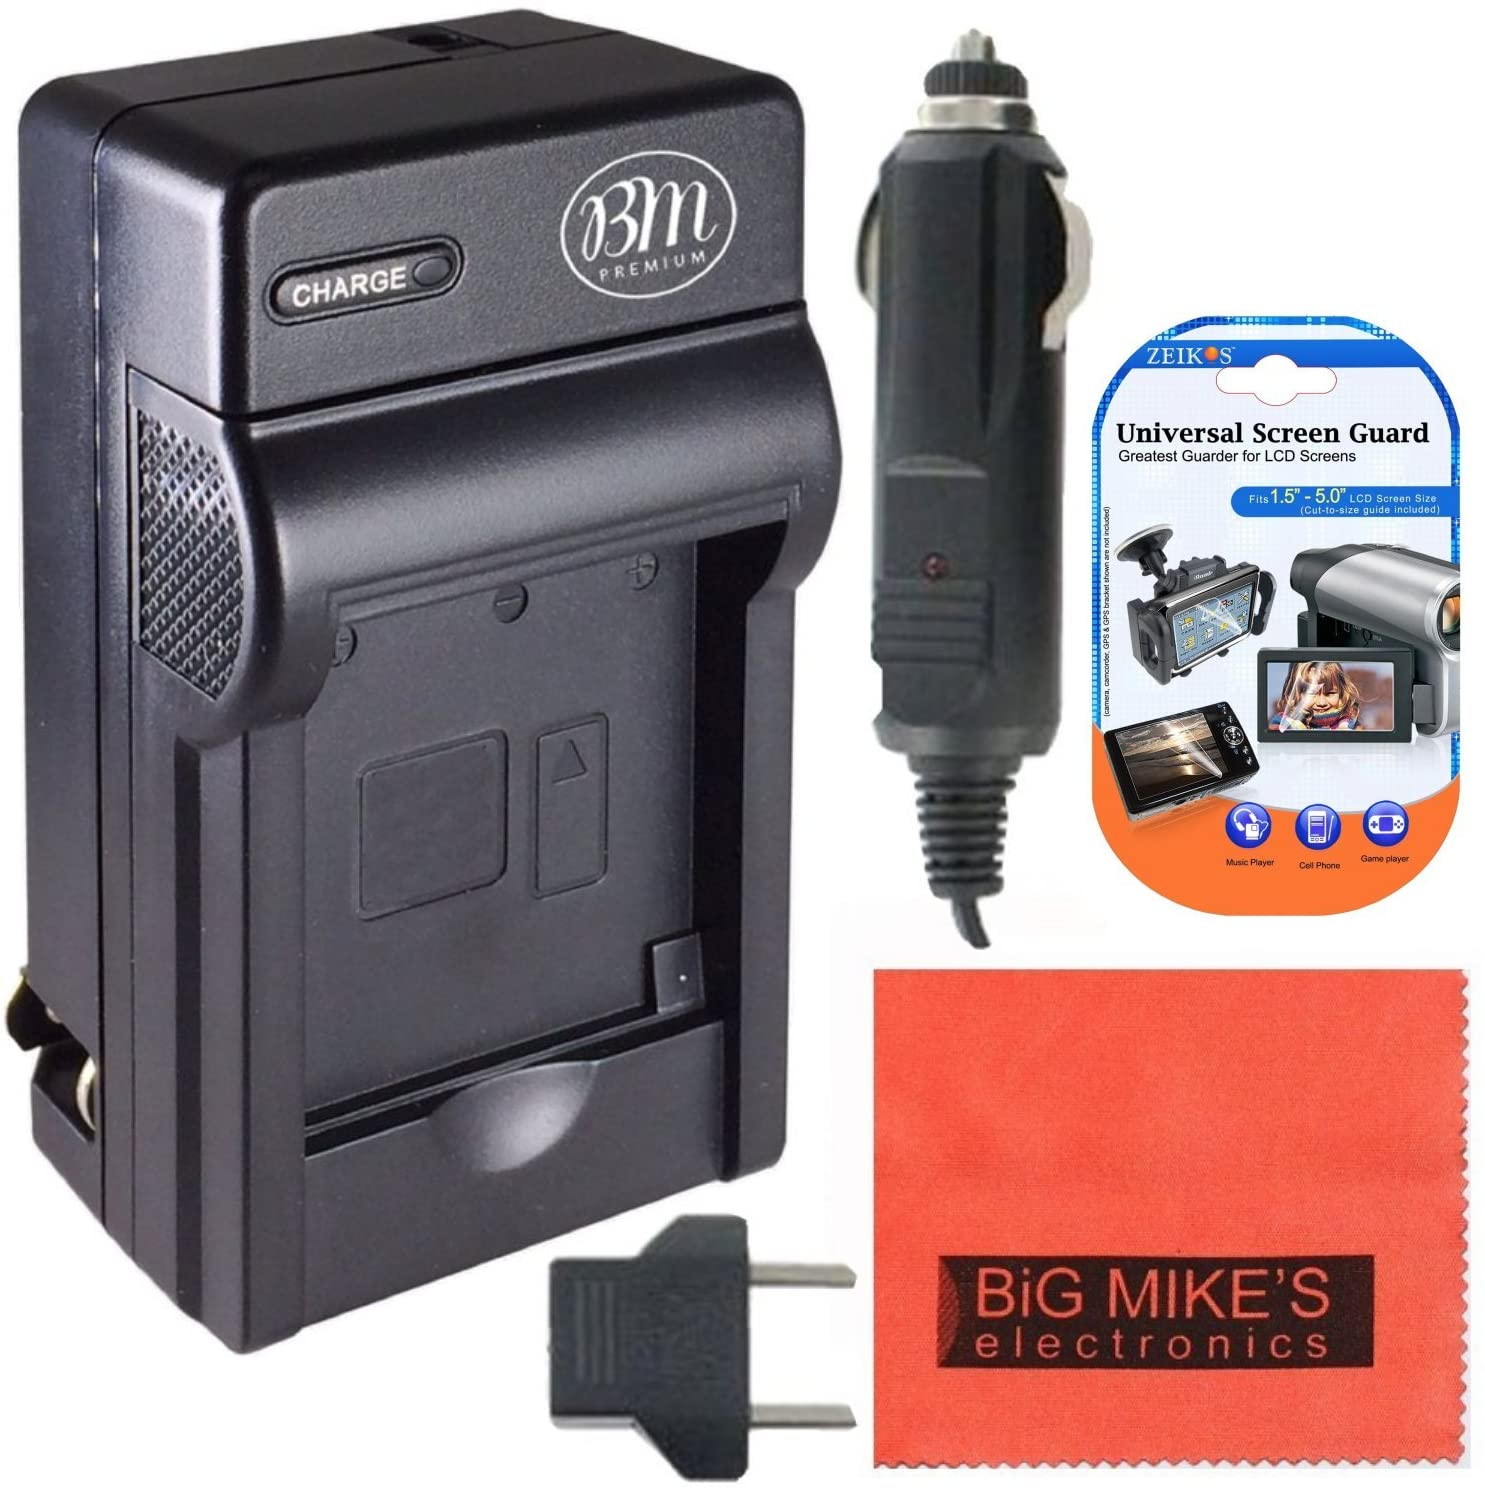 BM Premium NB8L Battery Charger for Canon PowerShot A2200 IS, A3000 IS, A3100 IS, A3200 IS, A3300 IS Digital Camera